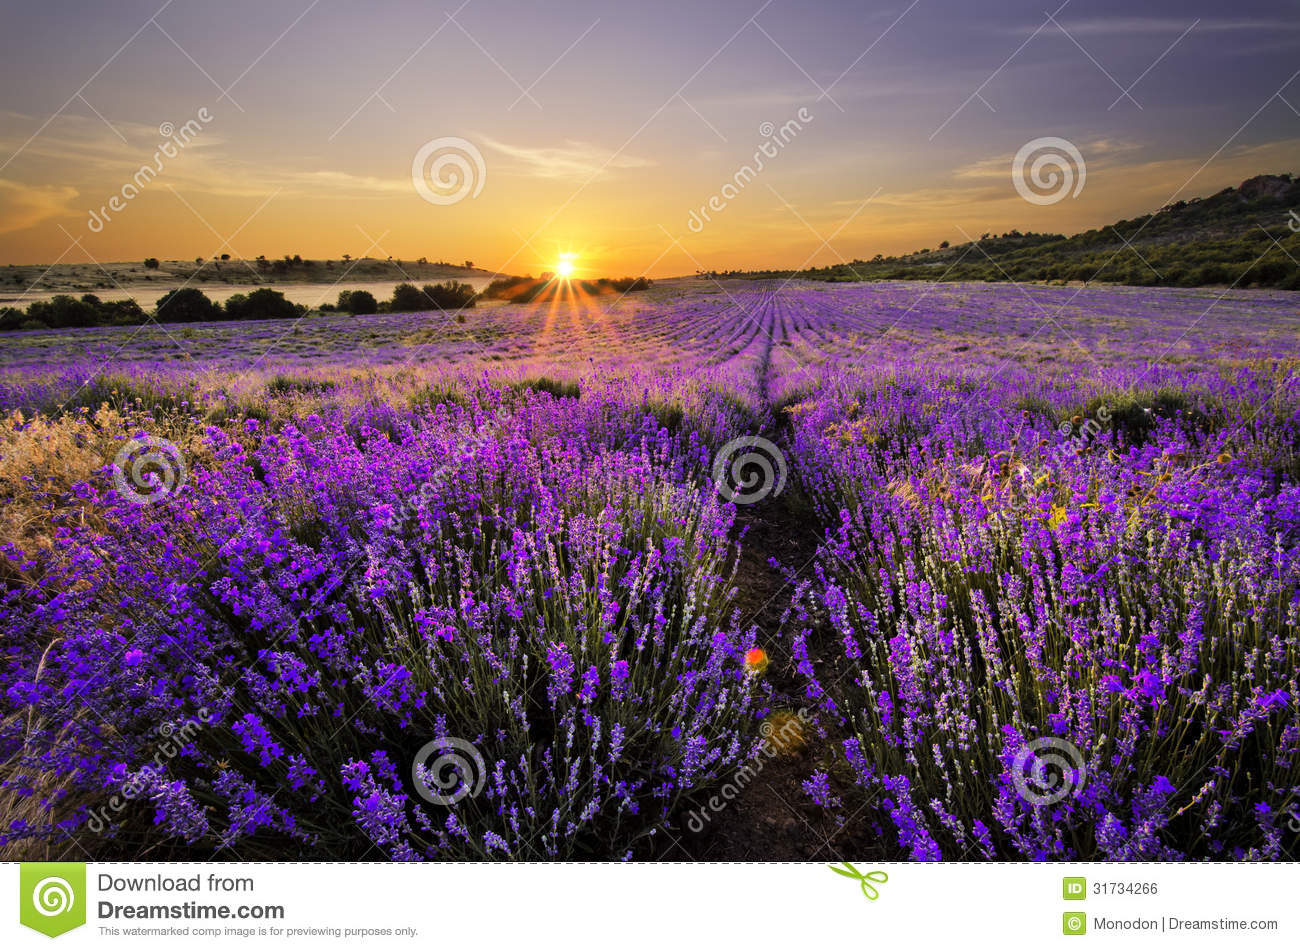 Fall Harvest Wallpaper Hd Sunset Over Lavender Field Royalty Free Stock Image